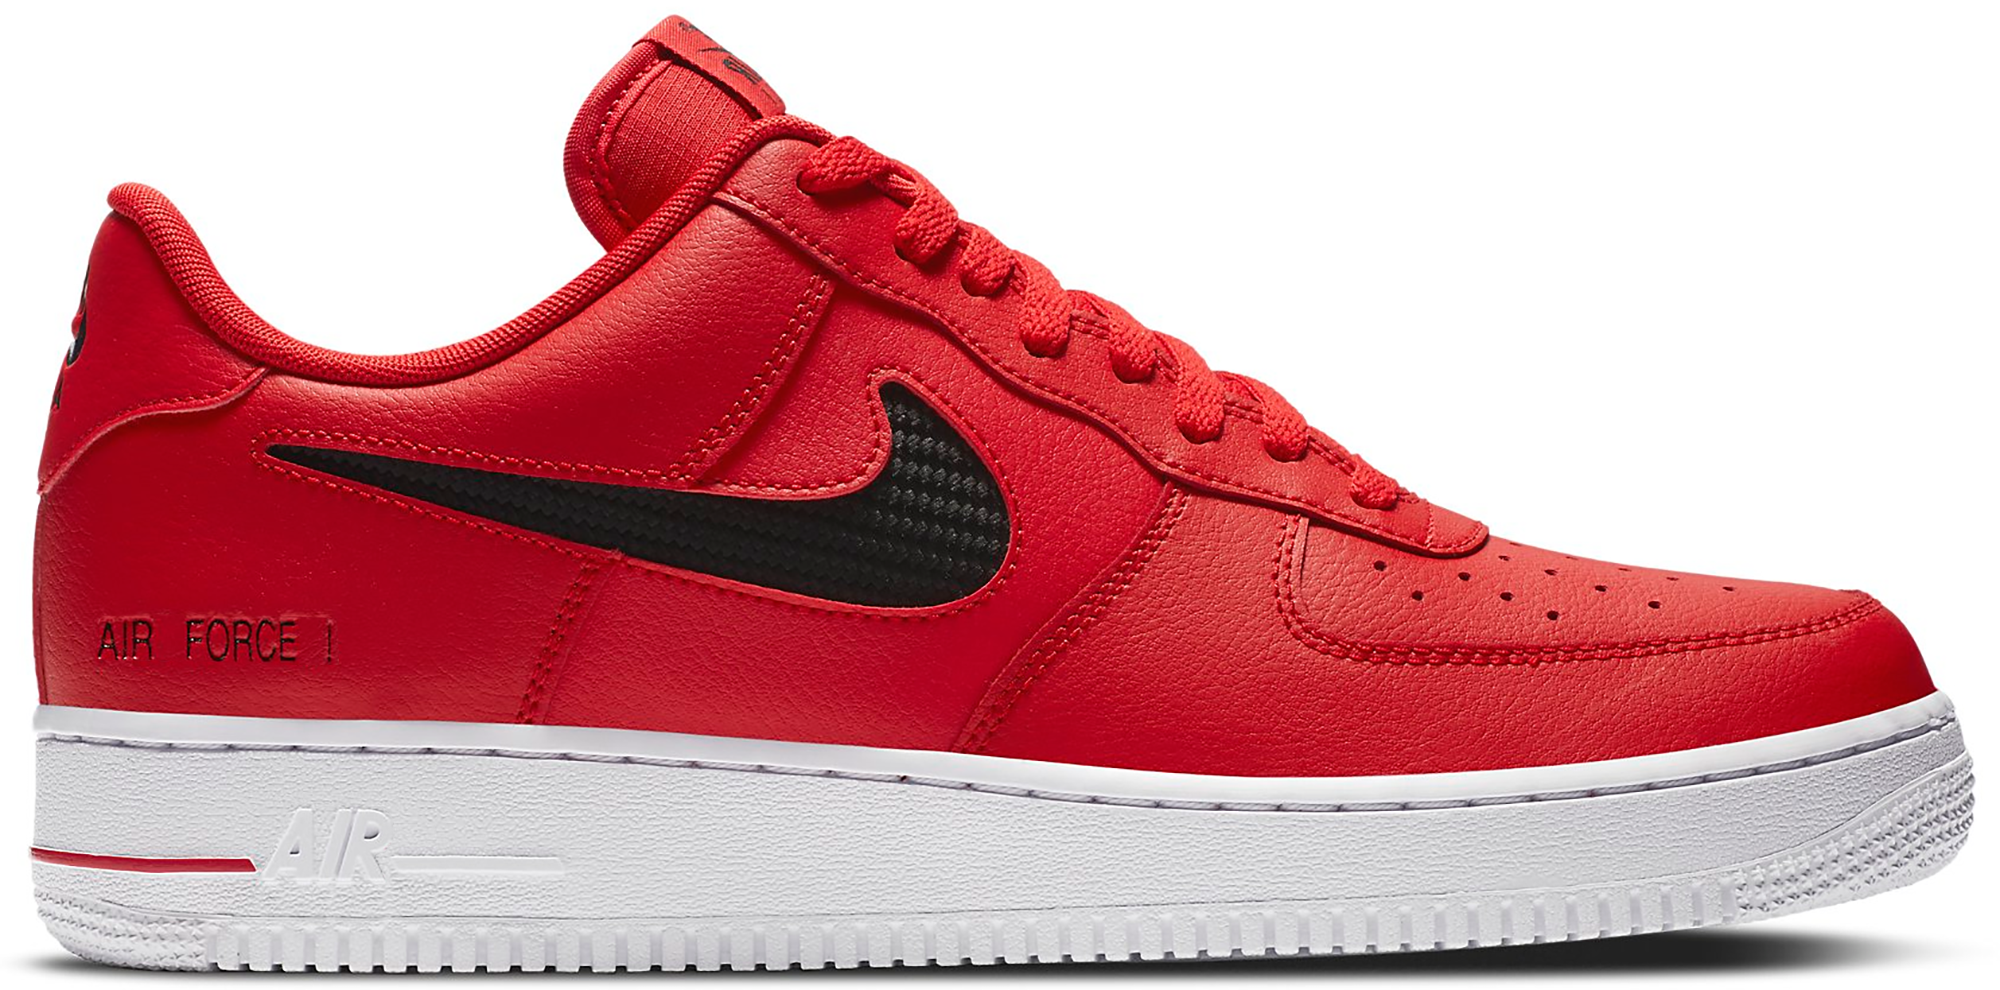 Nike Air Force 1 Low Cut Out Swoosh Red